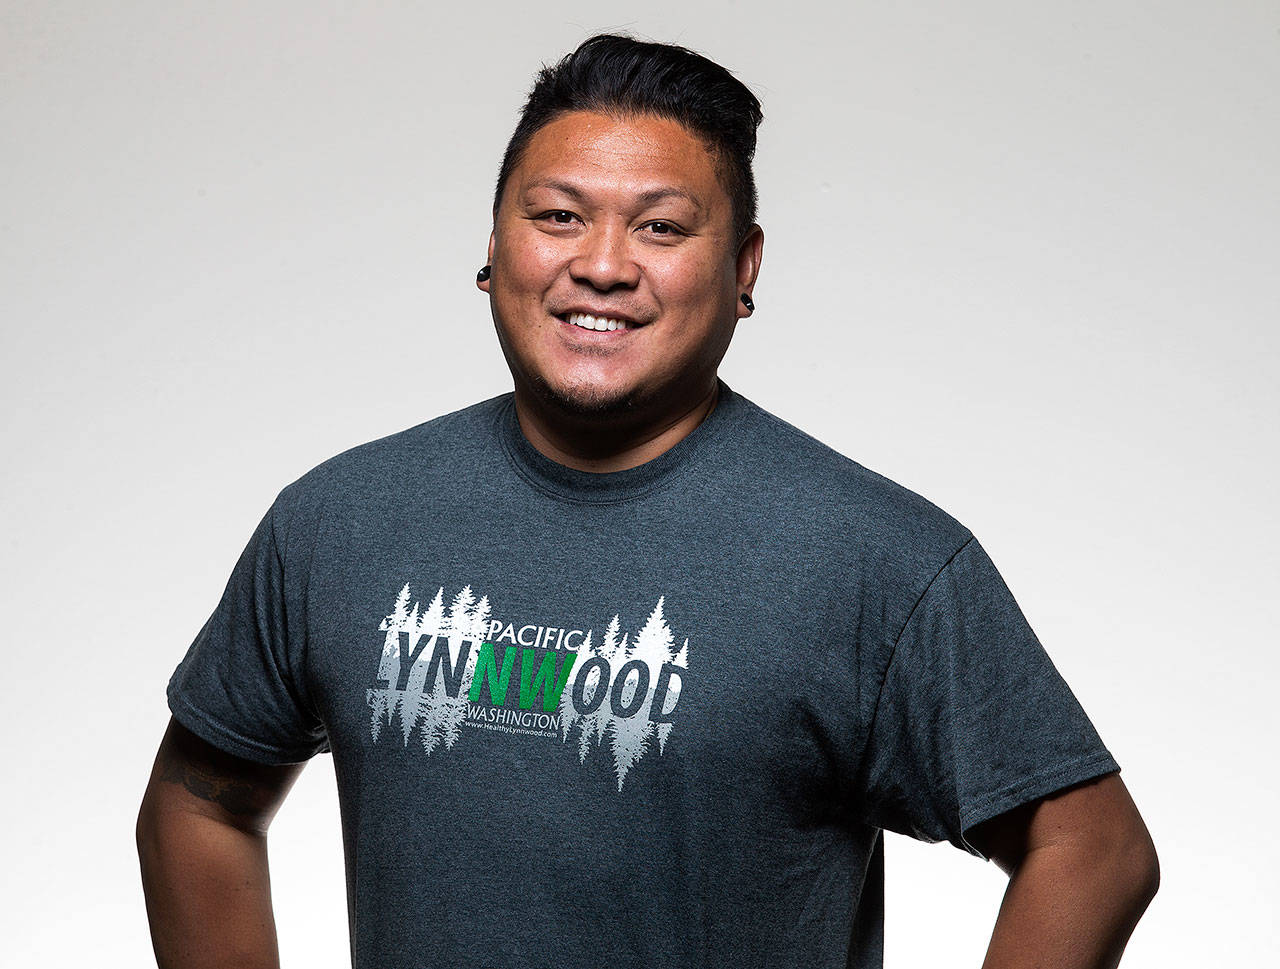 Allan C. Carandang designed the winning Lynnwood T-shirt in a 2017 contest to celebrate what people love about Lynnwood. (Andy Bronson / The Herald)